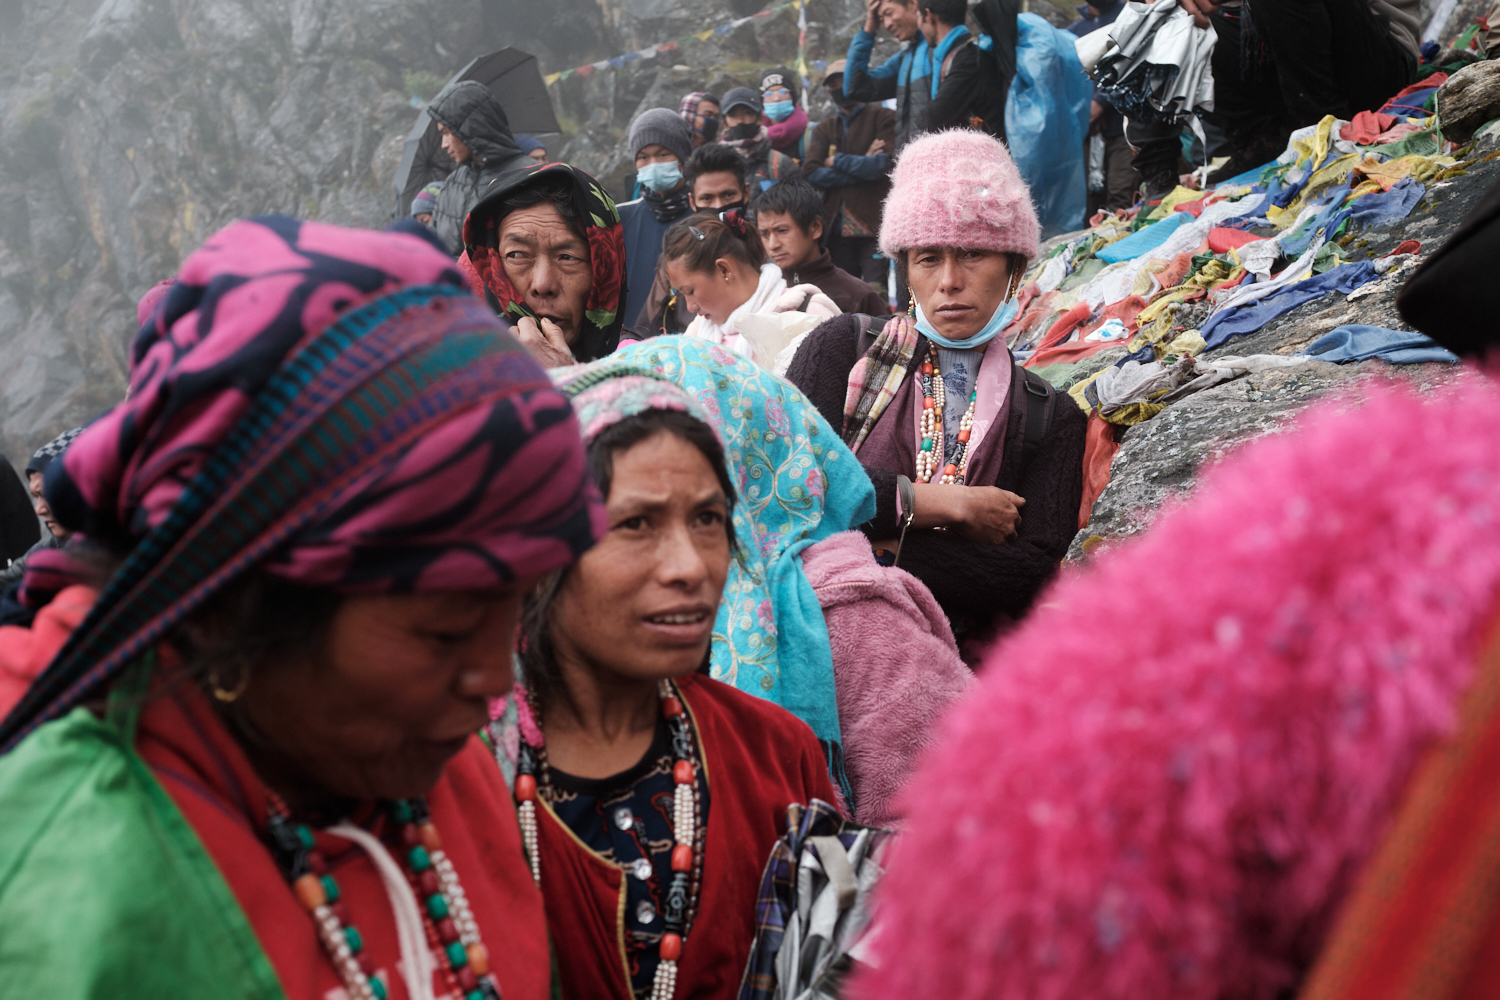 Women observe shamans engaged in rituals at Trishul Dhara